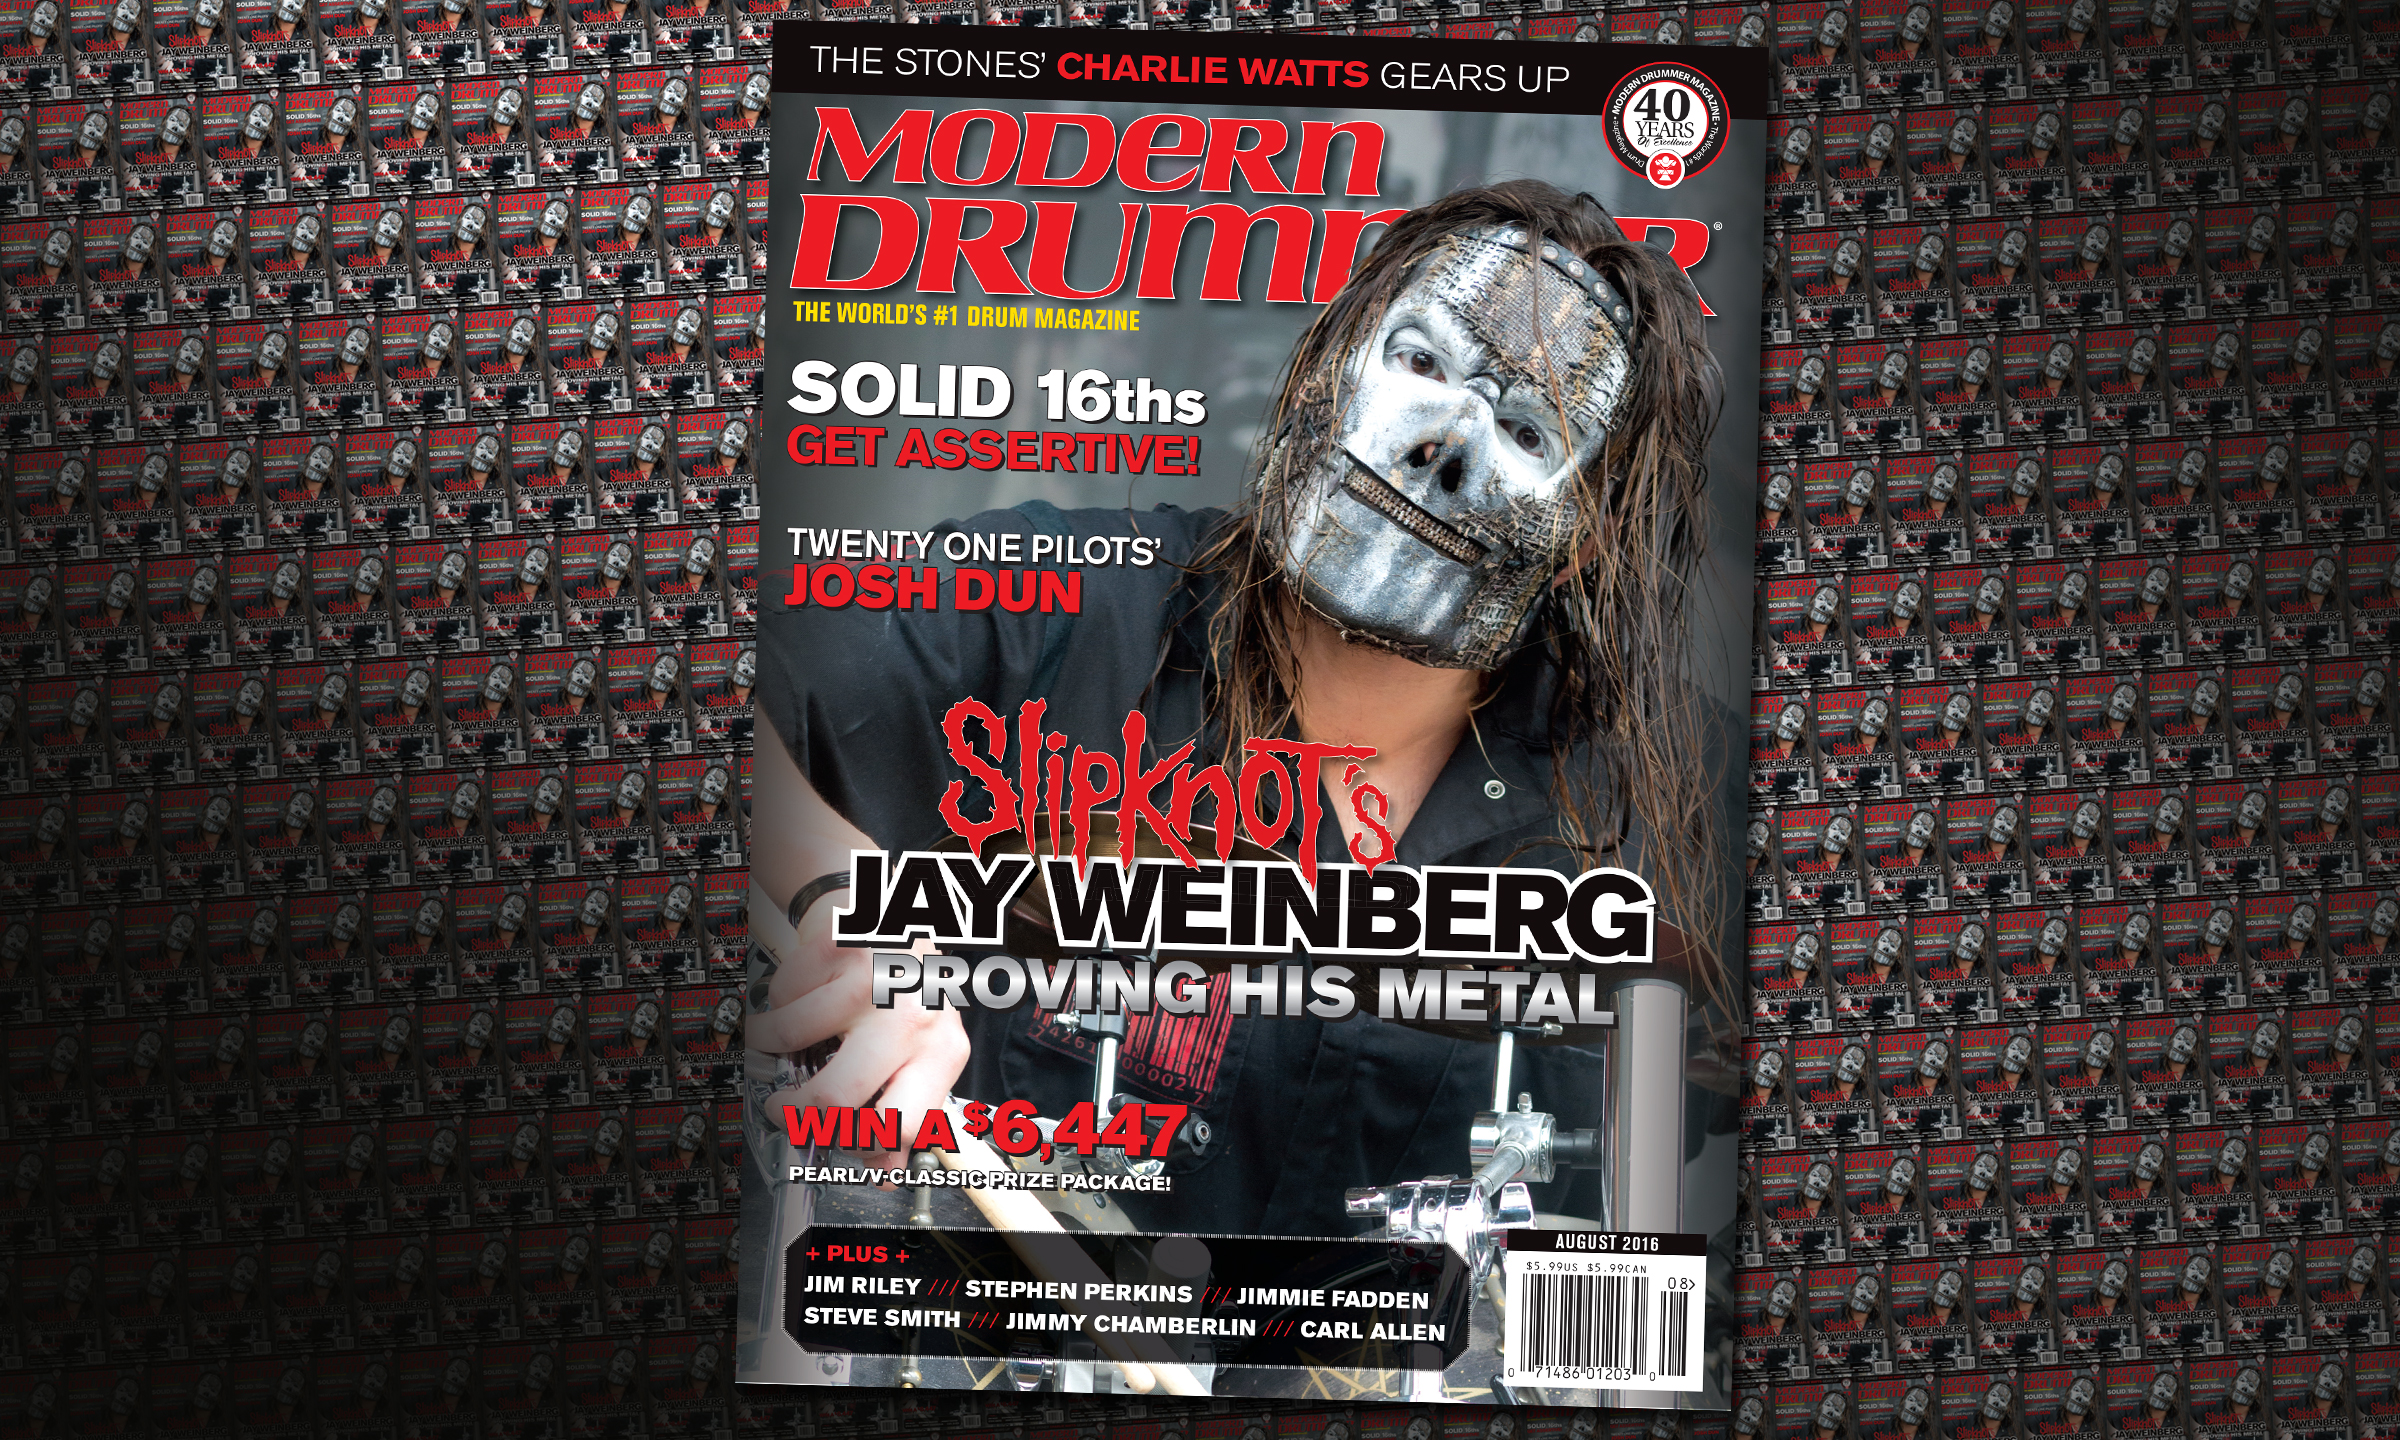 Slipknot's Jay Weinberg on the August 2016 issue of Modern Drummer